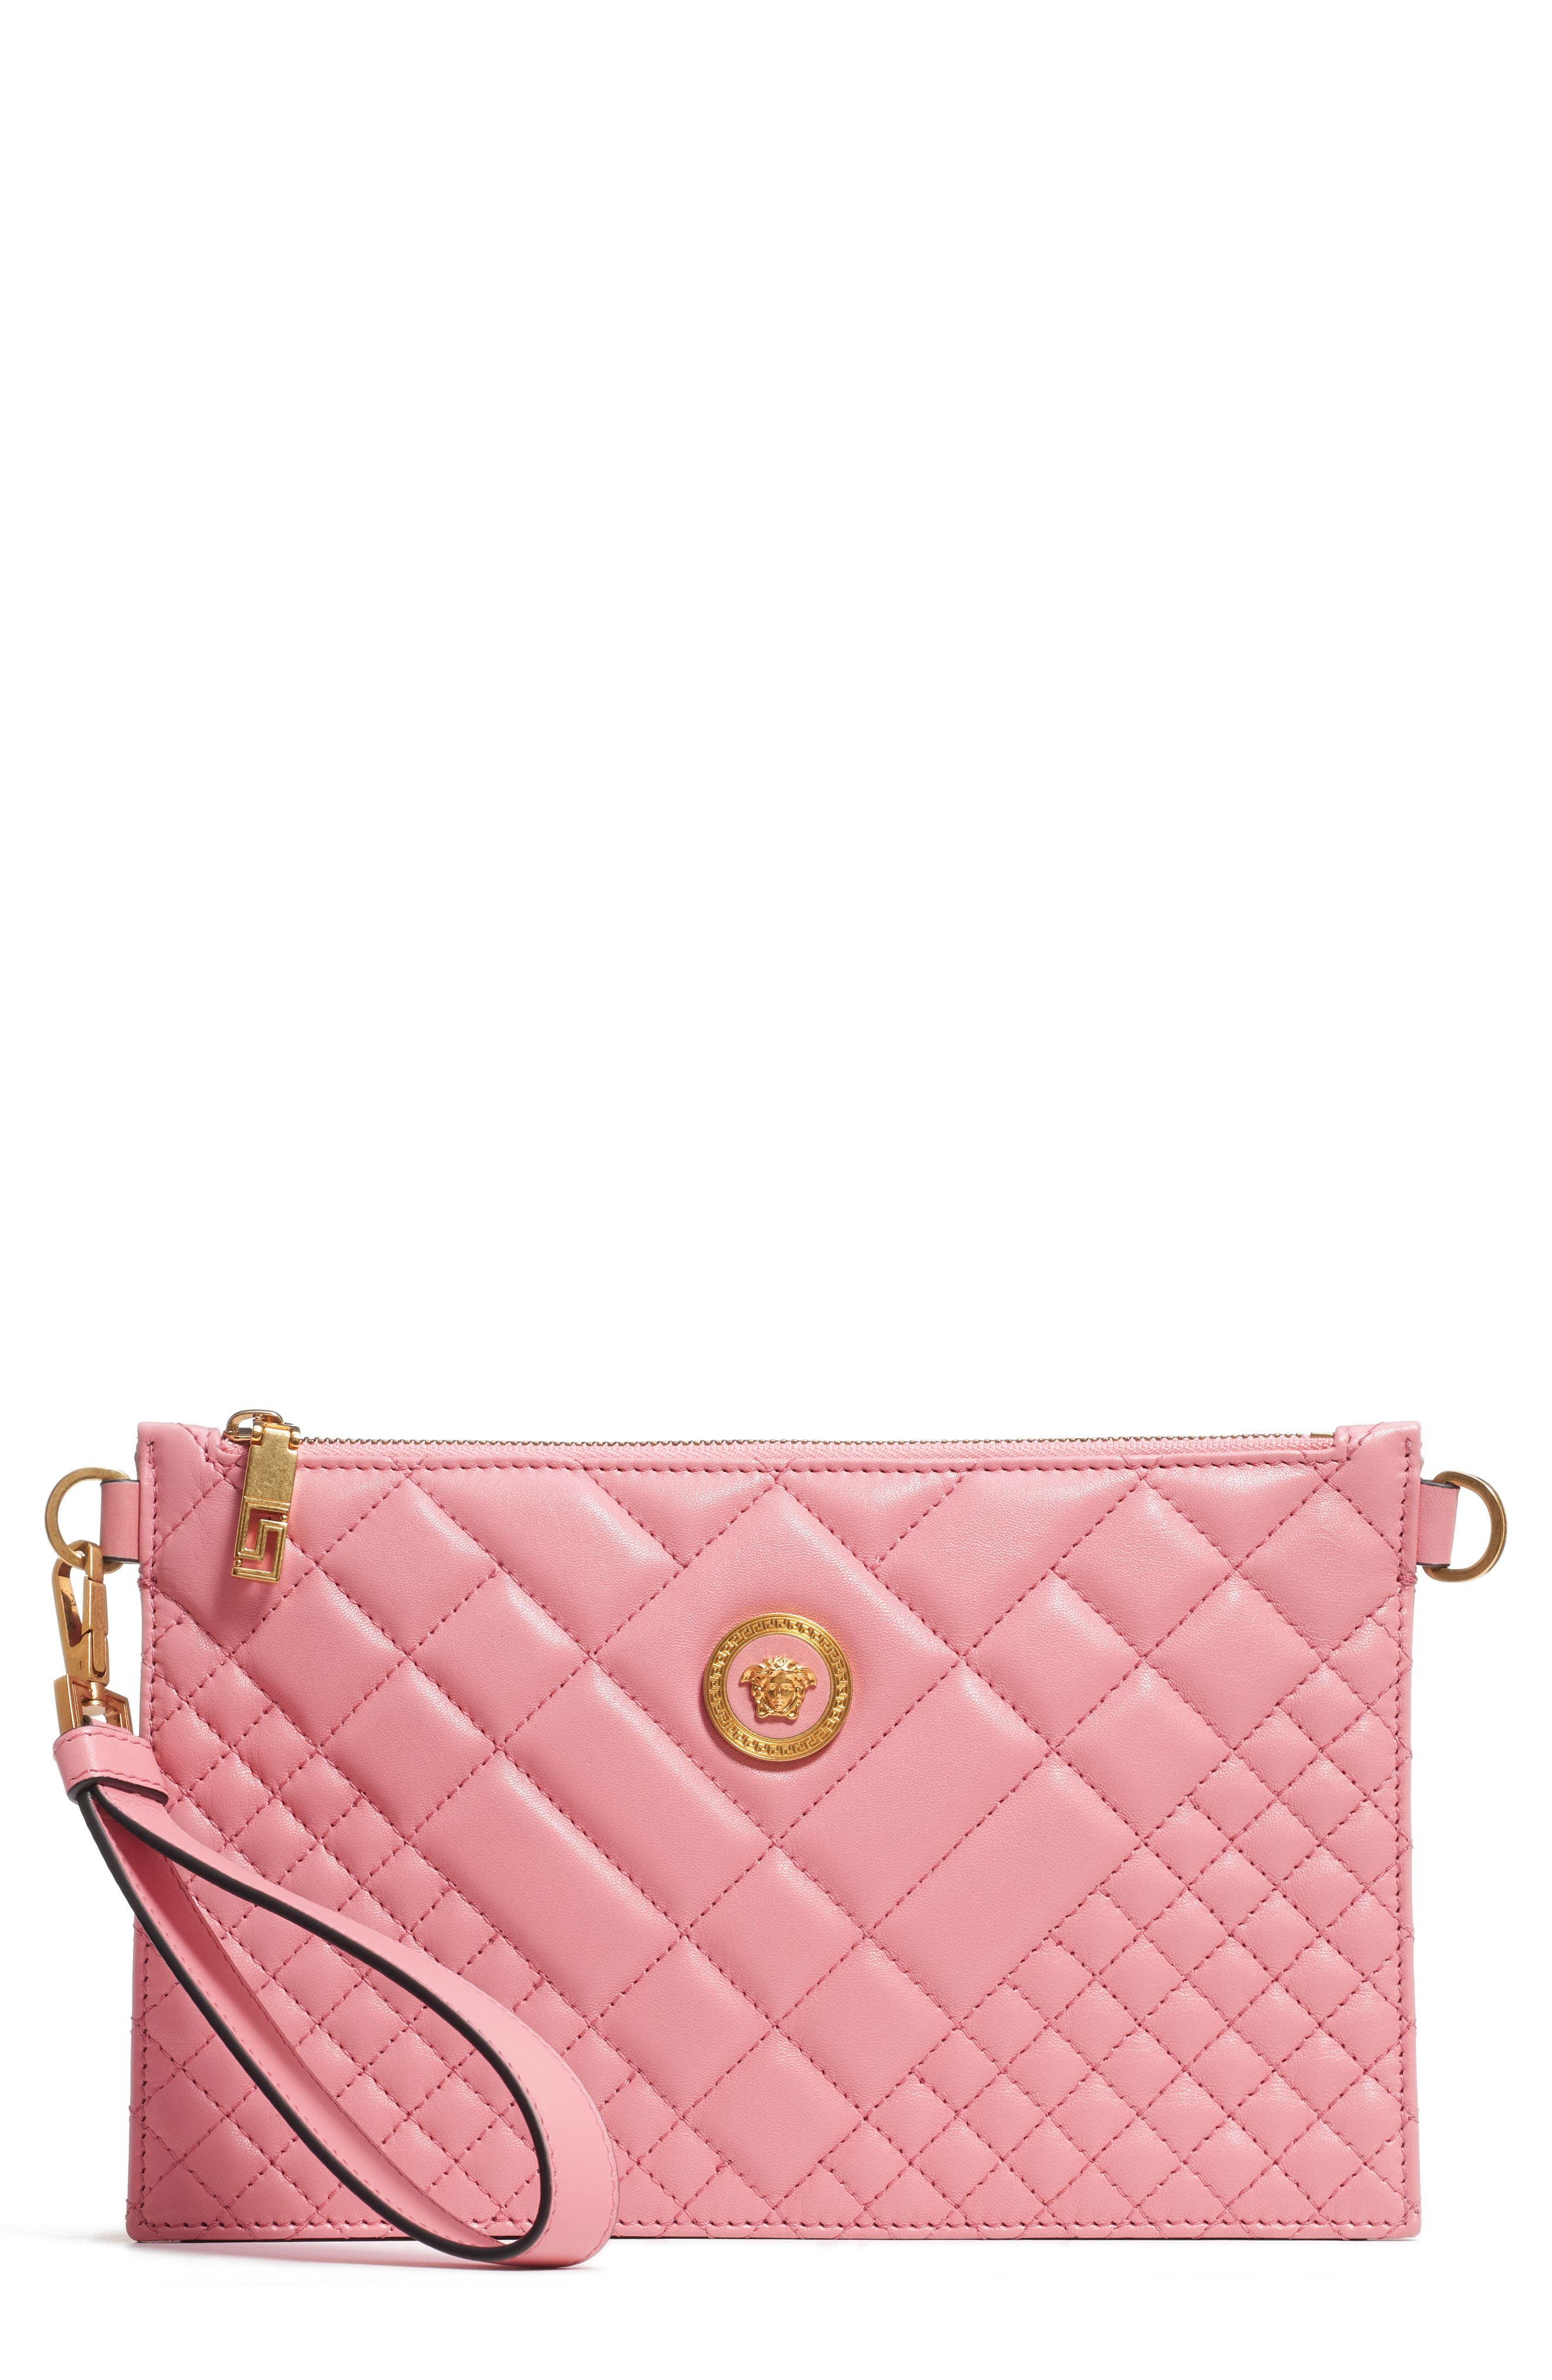 VERSACE, Tribute Icon Quilted Leather Pouch, Main thumbnail 1, color, SHELL PINK/ TRIBUTE GOLD